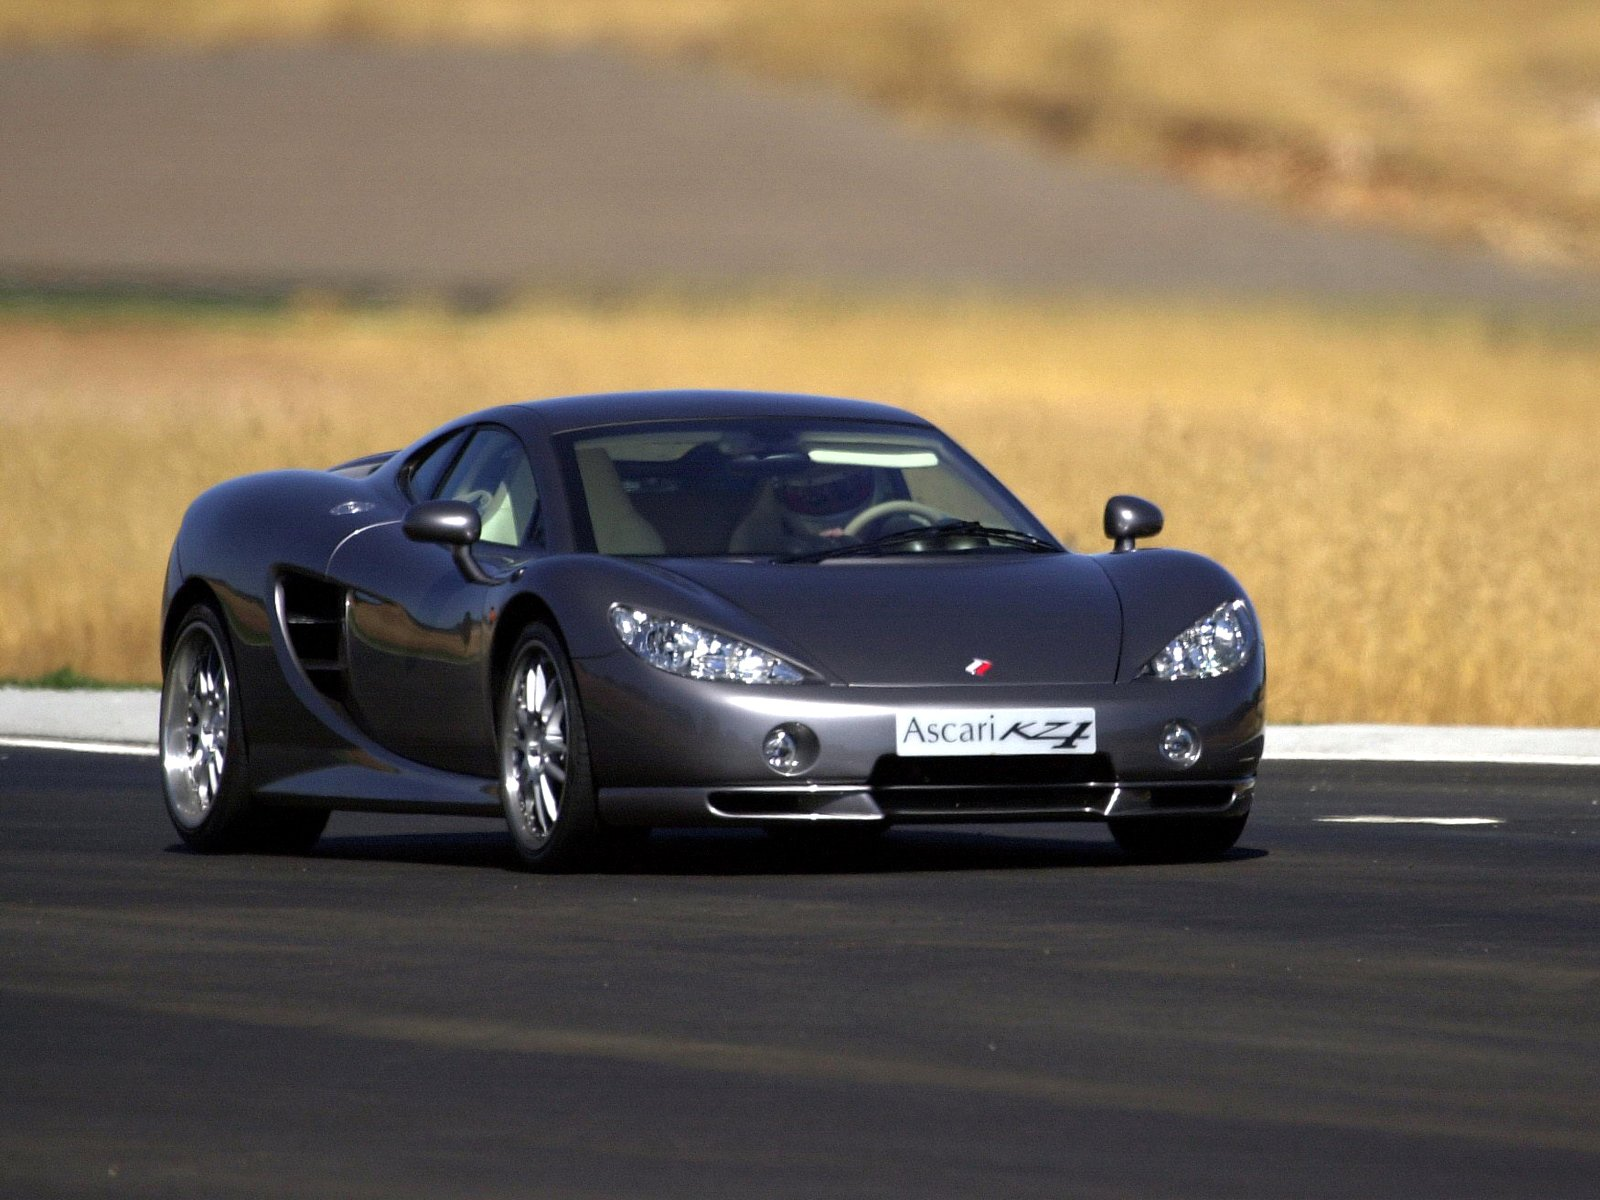 Fuel Efficient Used Cars >> Ascari Pictures, Wallpapers, Pics, Photos & Quality Images